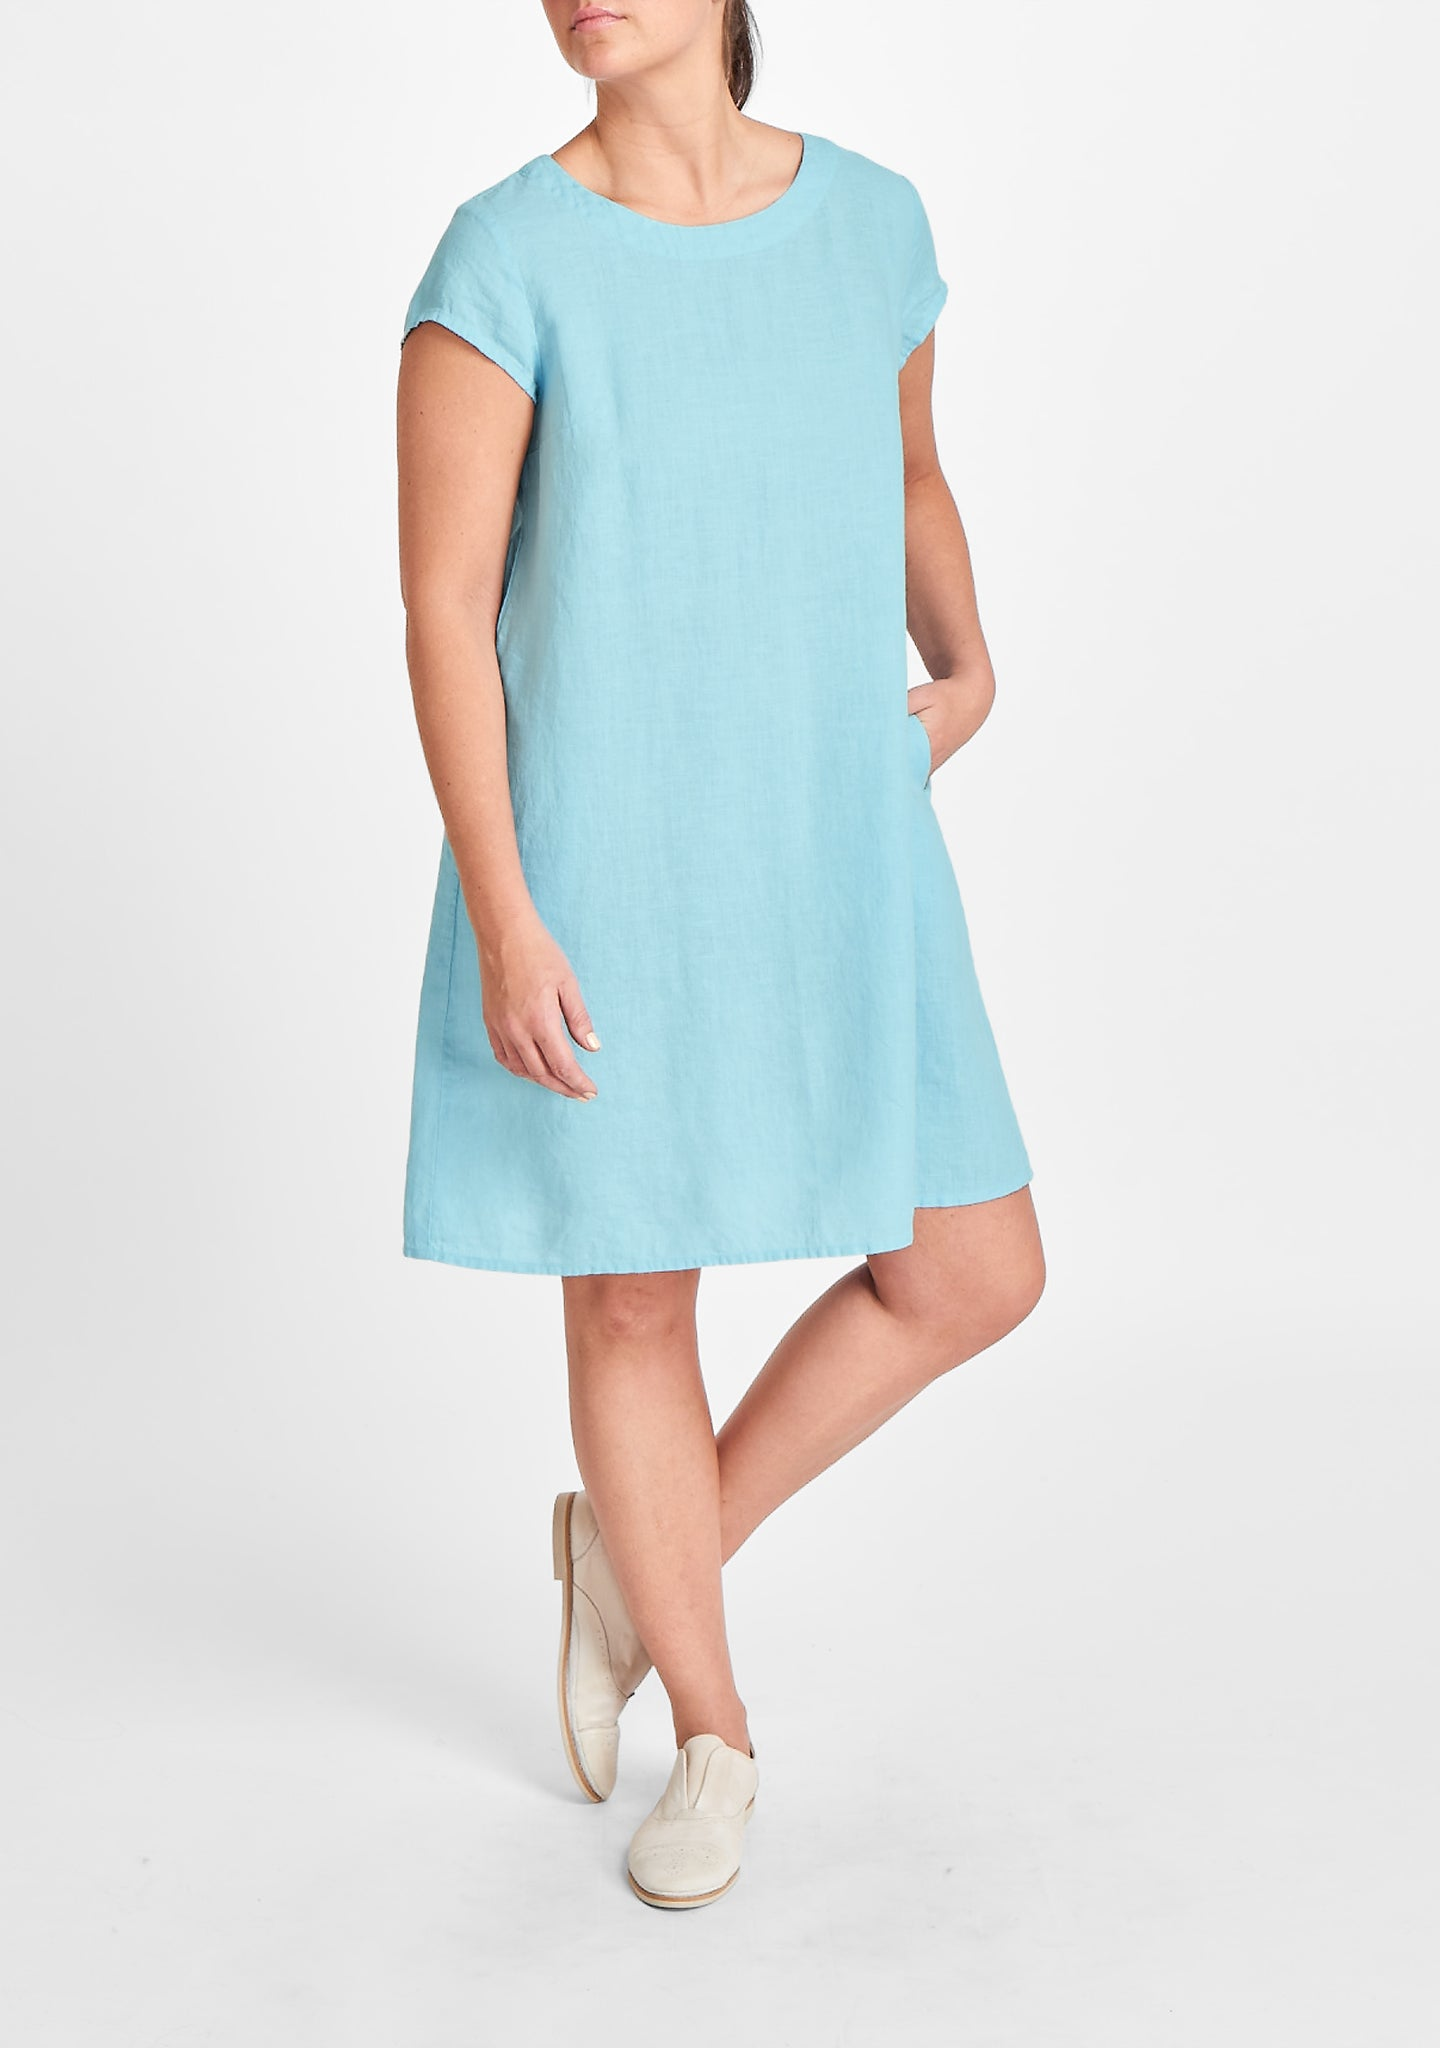 tuck back dress blue